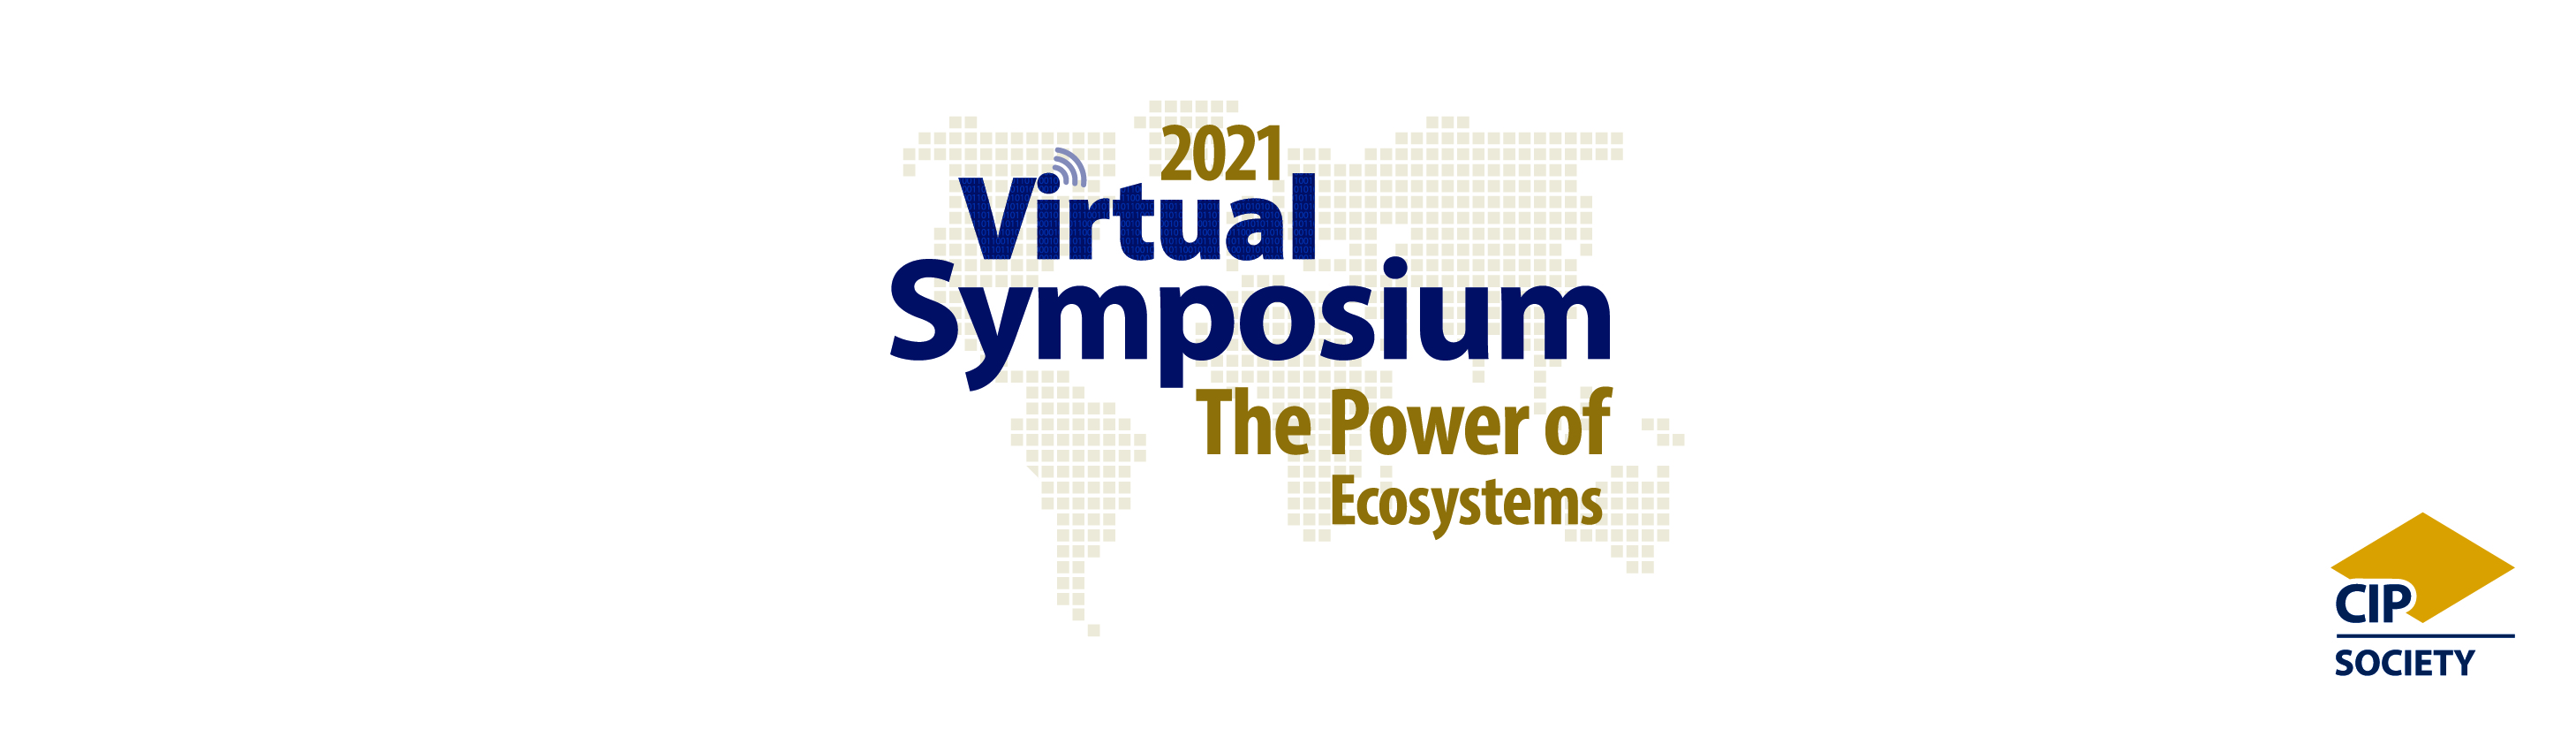 2021 Virtual Symposium: The Power of Ecosystems